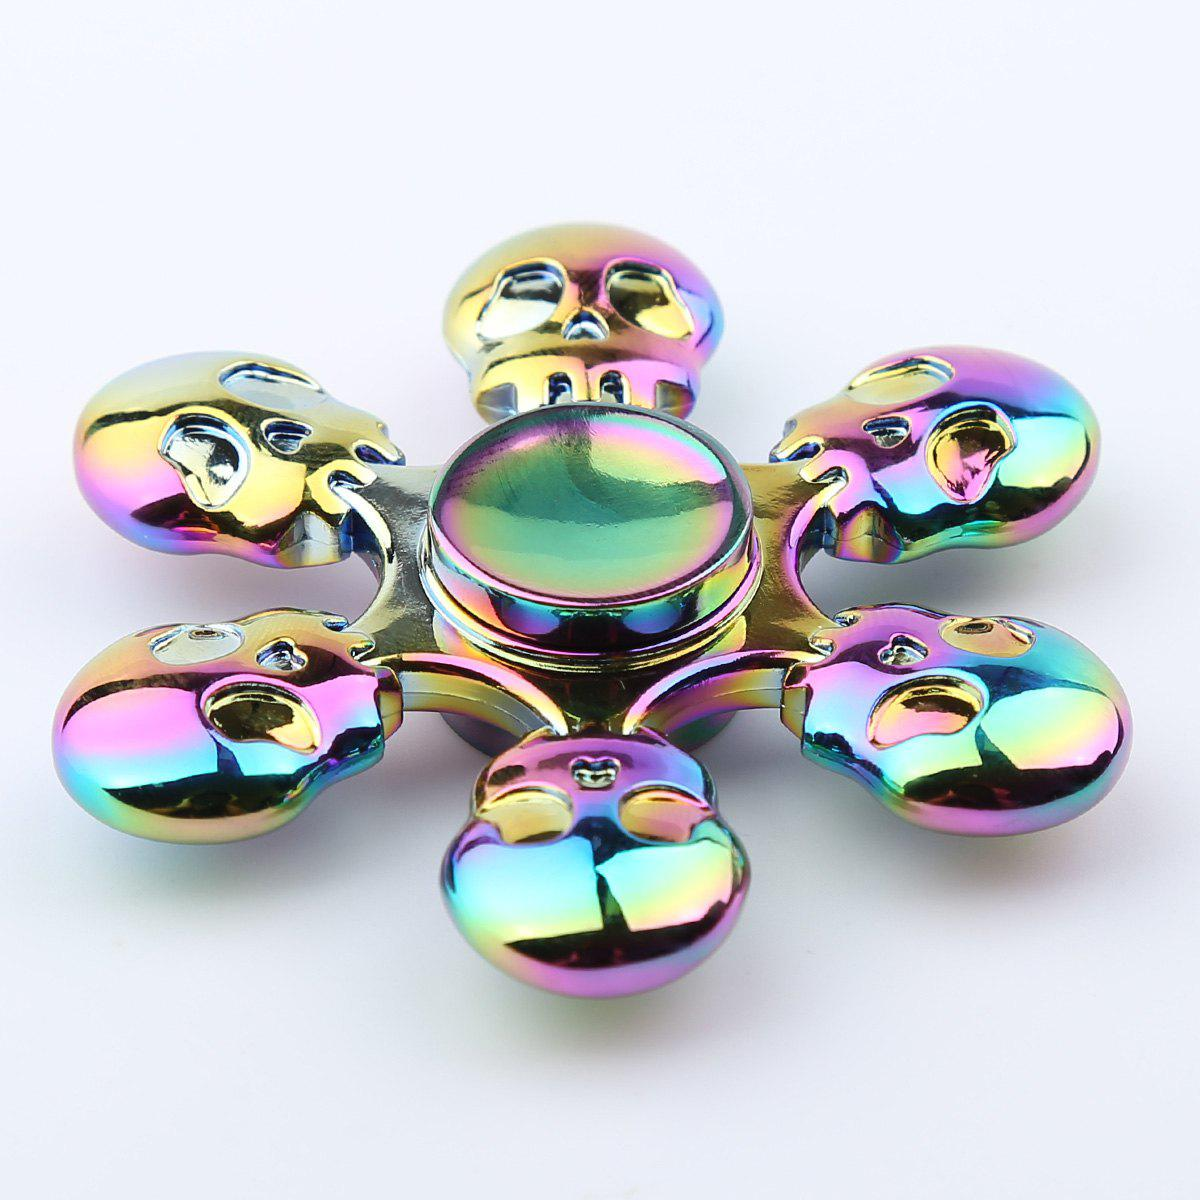 Fidget Toy Skull Blades Fast Bearing Hand SpinnerHOME<br><br>Size: 6.5*6.5*1.3CM; Color: COLORFUL; Products Type: Fidget Spinner; Theme: Funny; Frame material: Zinc Alloy; Features: Creative Toy; Shape/Pattern: Skull; Swing Numbers: 6; Weight: 0.0950kg; Package Contents: 1 x Fidget Spinner;